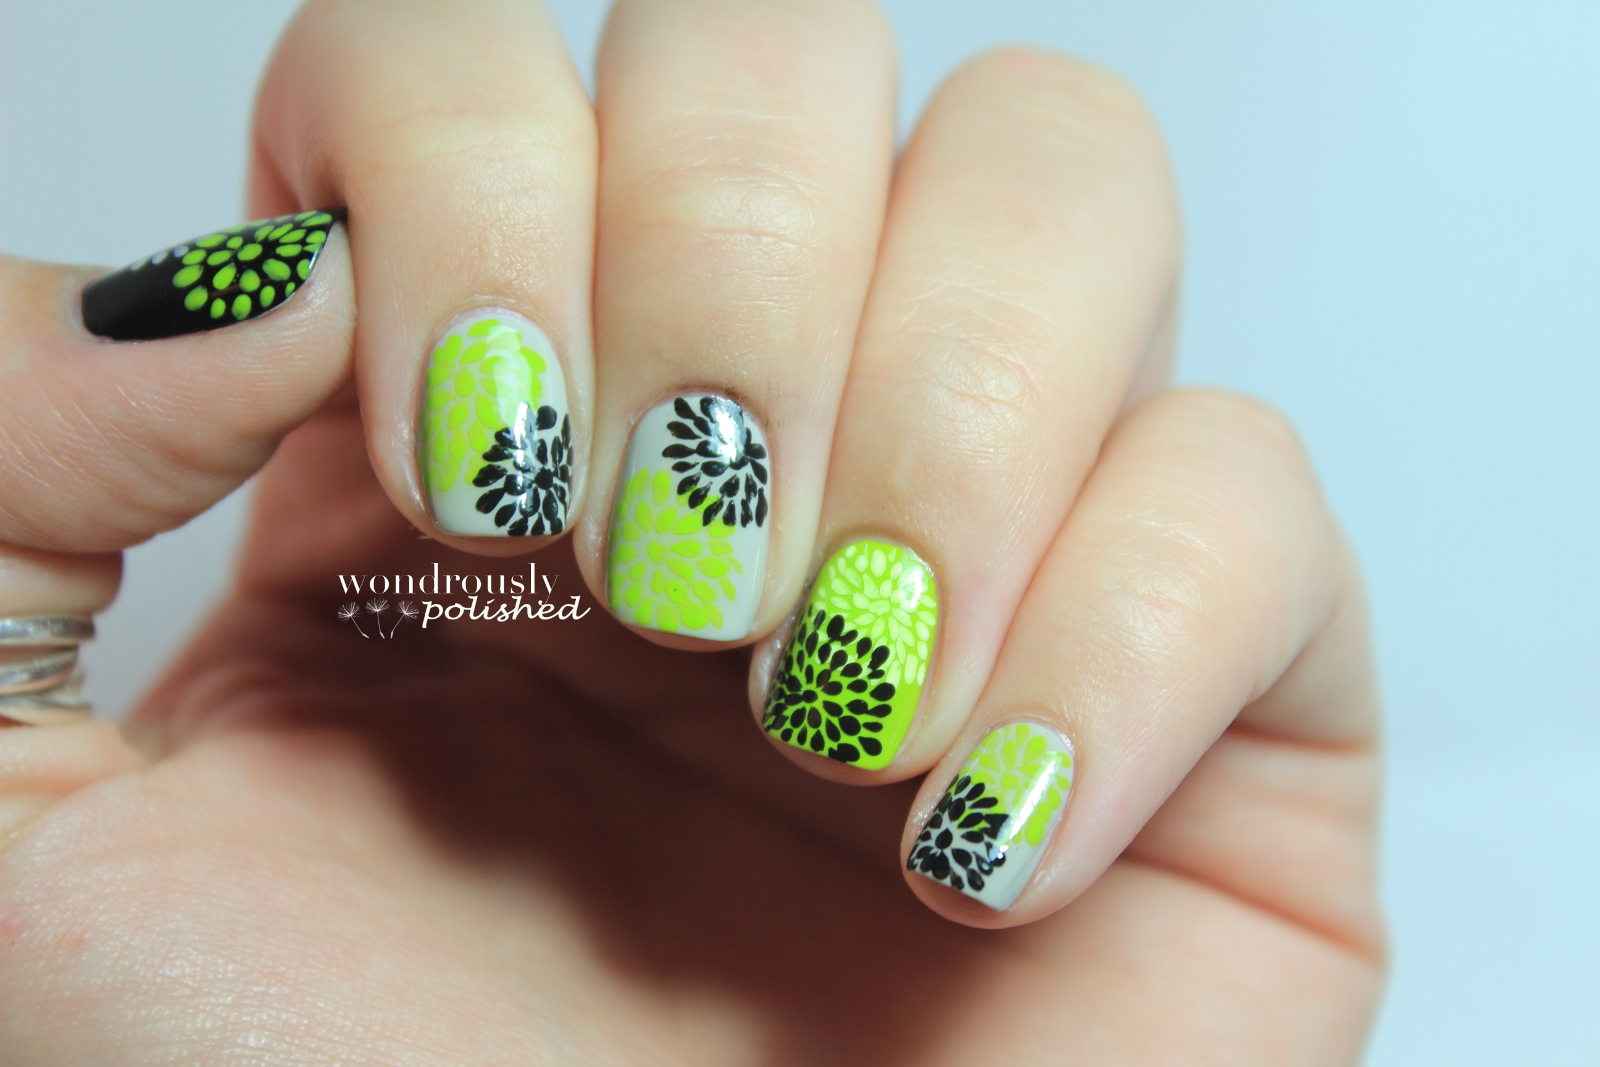 Wondrously Polished: 31 Day Nail Art Challenge - Day 4: Green Nails